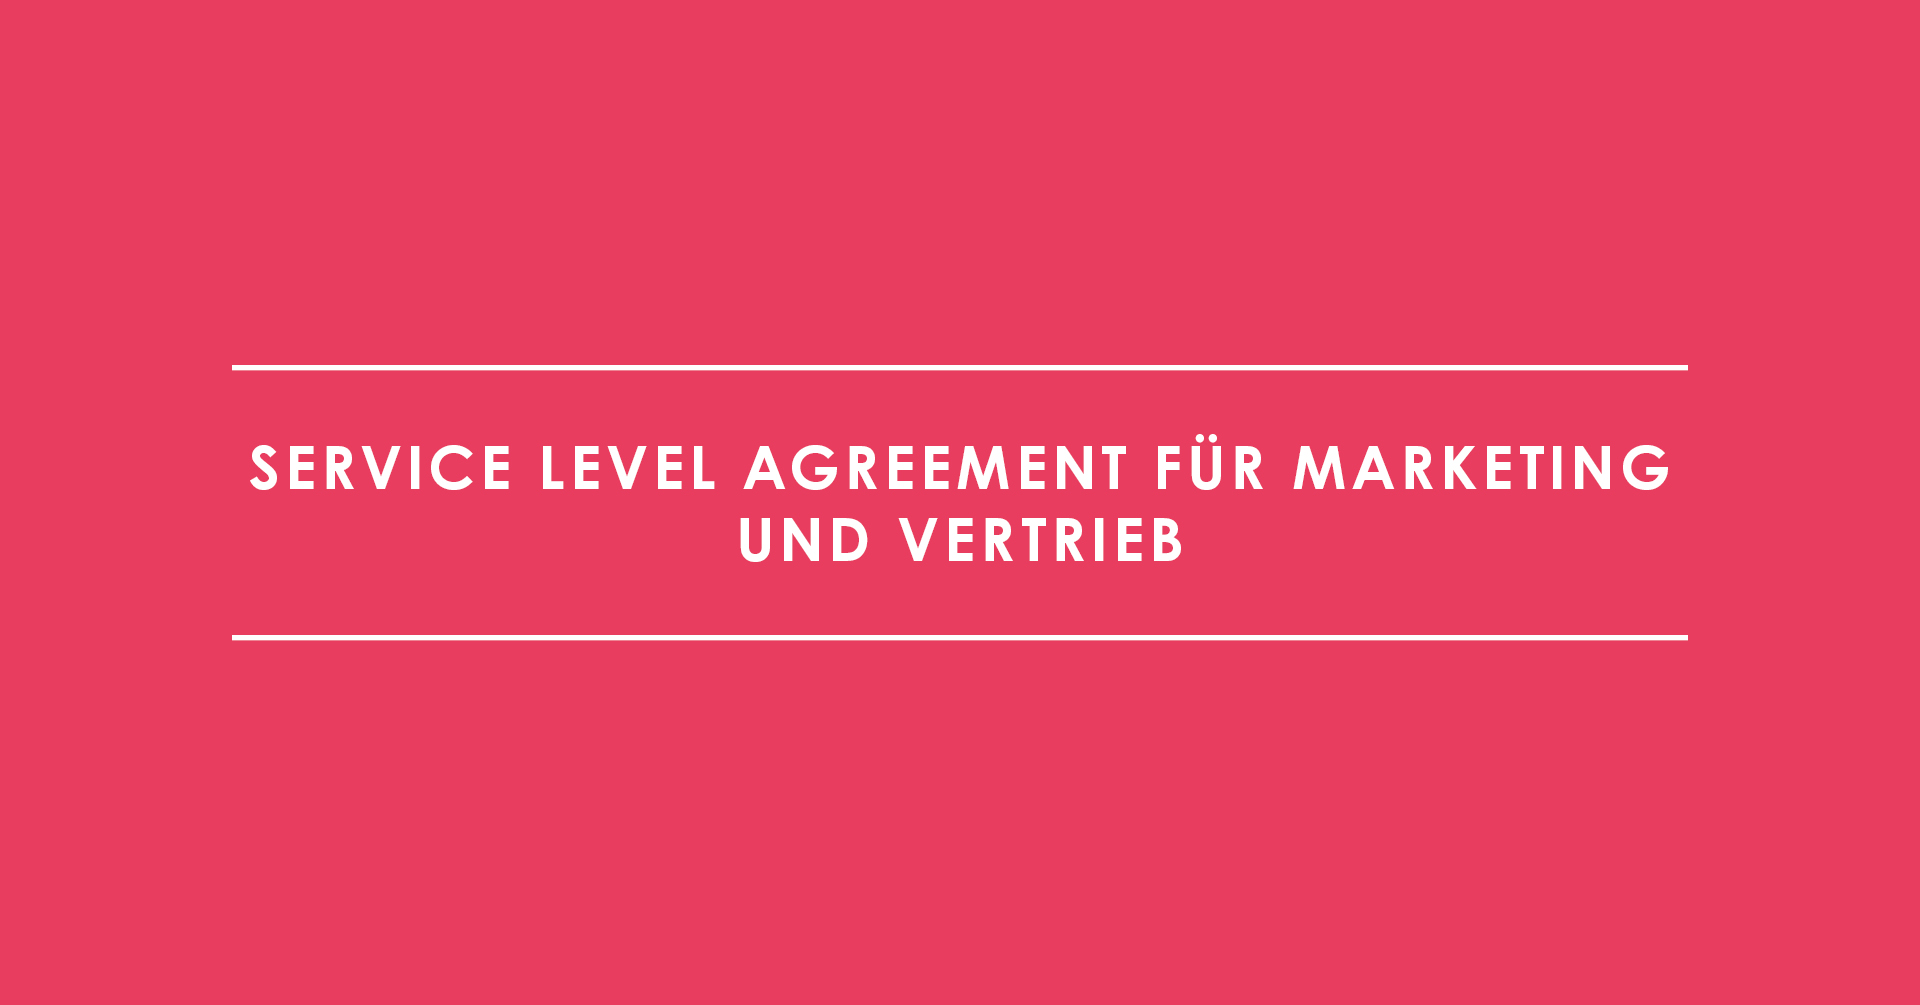 Service Level Agreement für Marketing und Vertrieb